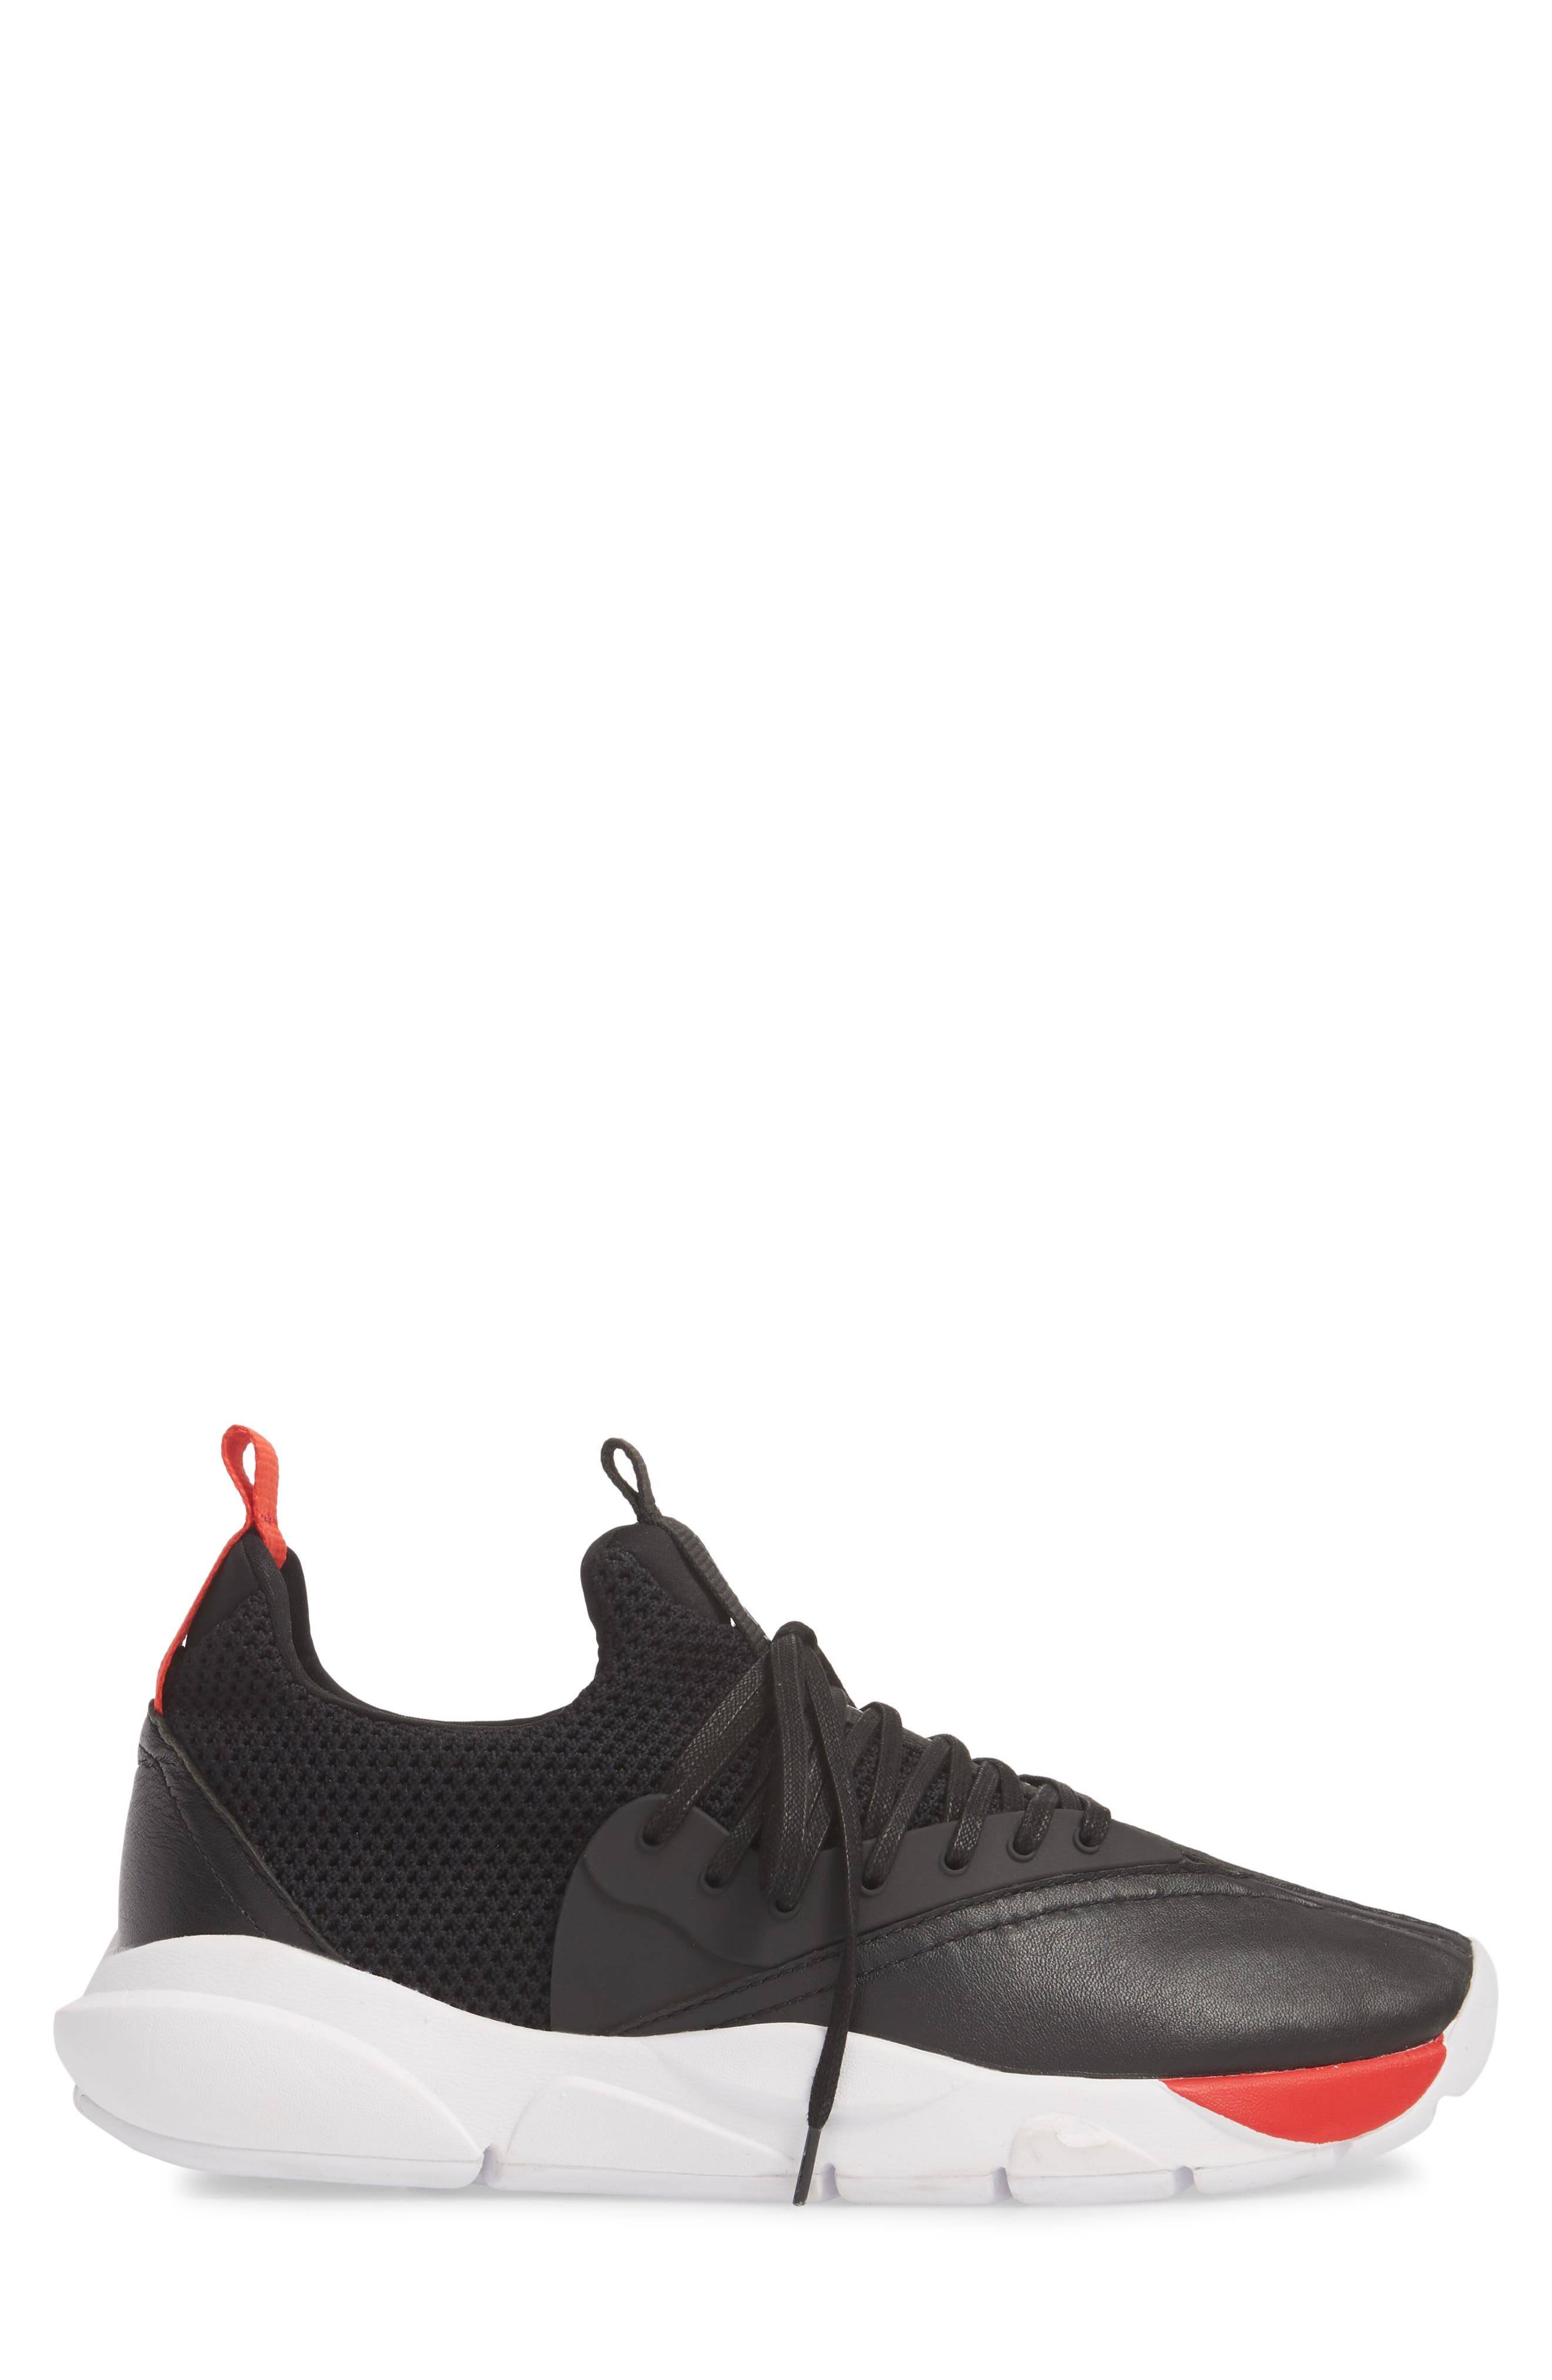 Clear Weather The Cloud Stryke Sneaker,                             Alternate thumbnail 3, color,                             002